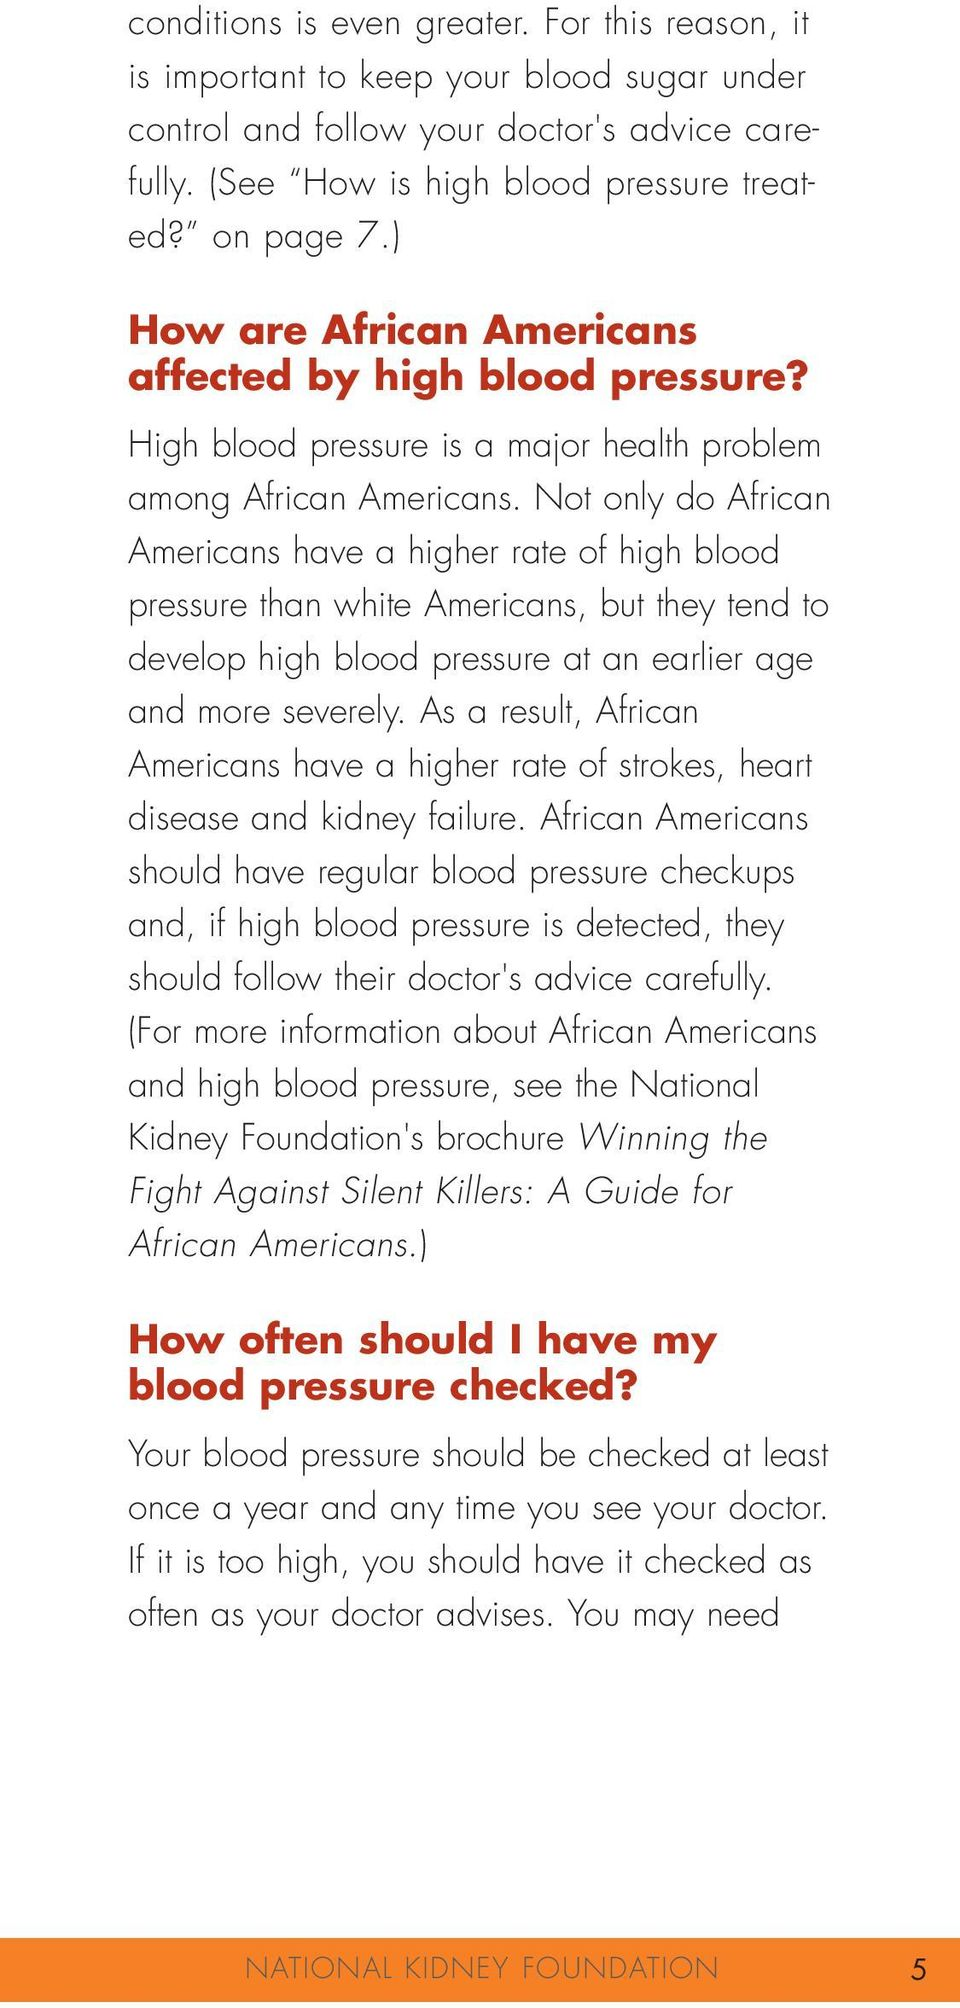 Not only do African Americans have a higher rate of high blood pressure than white Americans, but they tend to develop high blood pressure at an earlier age and more severely.